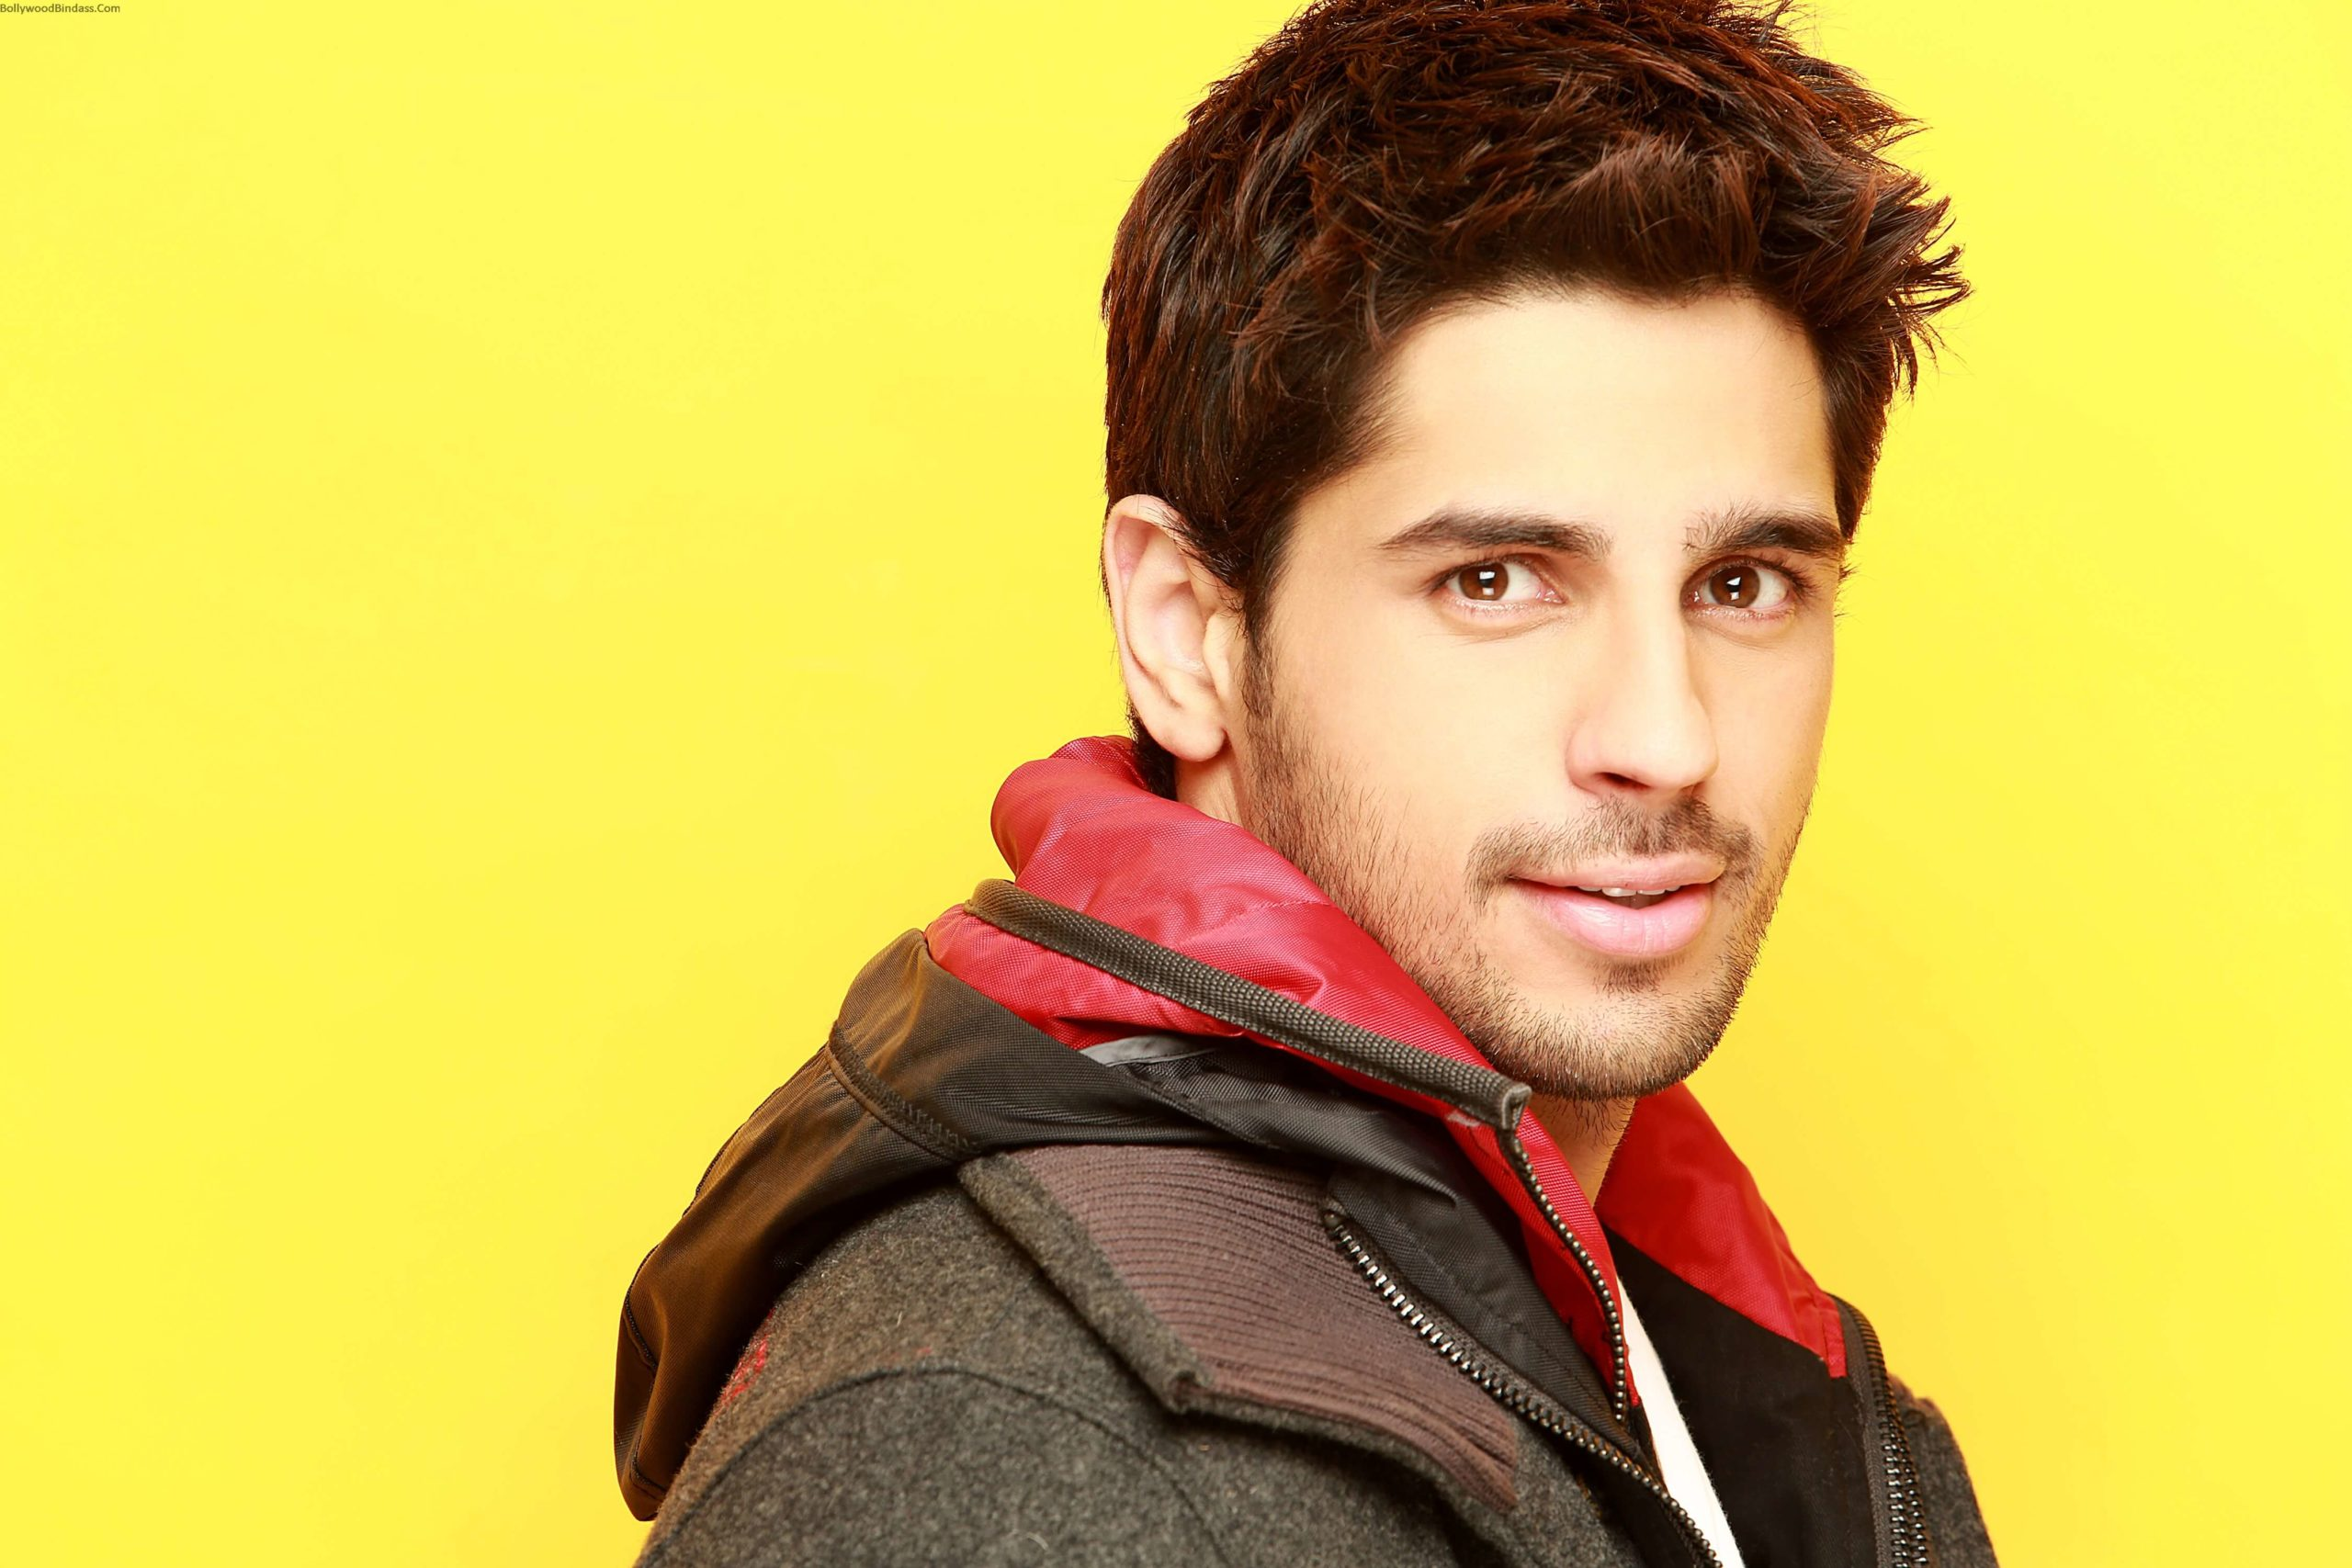 Sidharth Malhotra Movies, Height, Age, Photos, Birth Date, Biography, Girlfriend, Family, Hairstyle, Education, Details, Net Worth, Awards, Wiki, Instagram, Facebook, Imdb, Twitter (4)